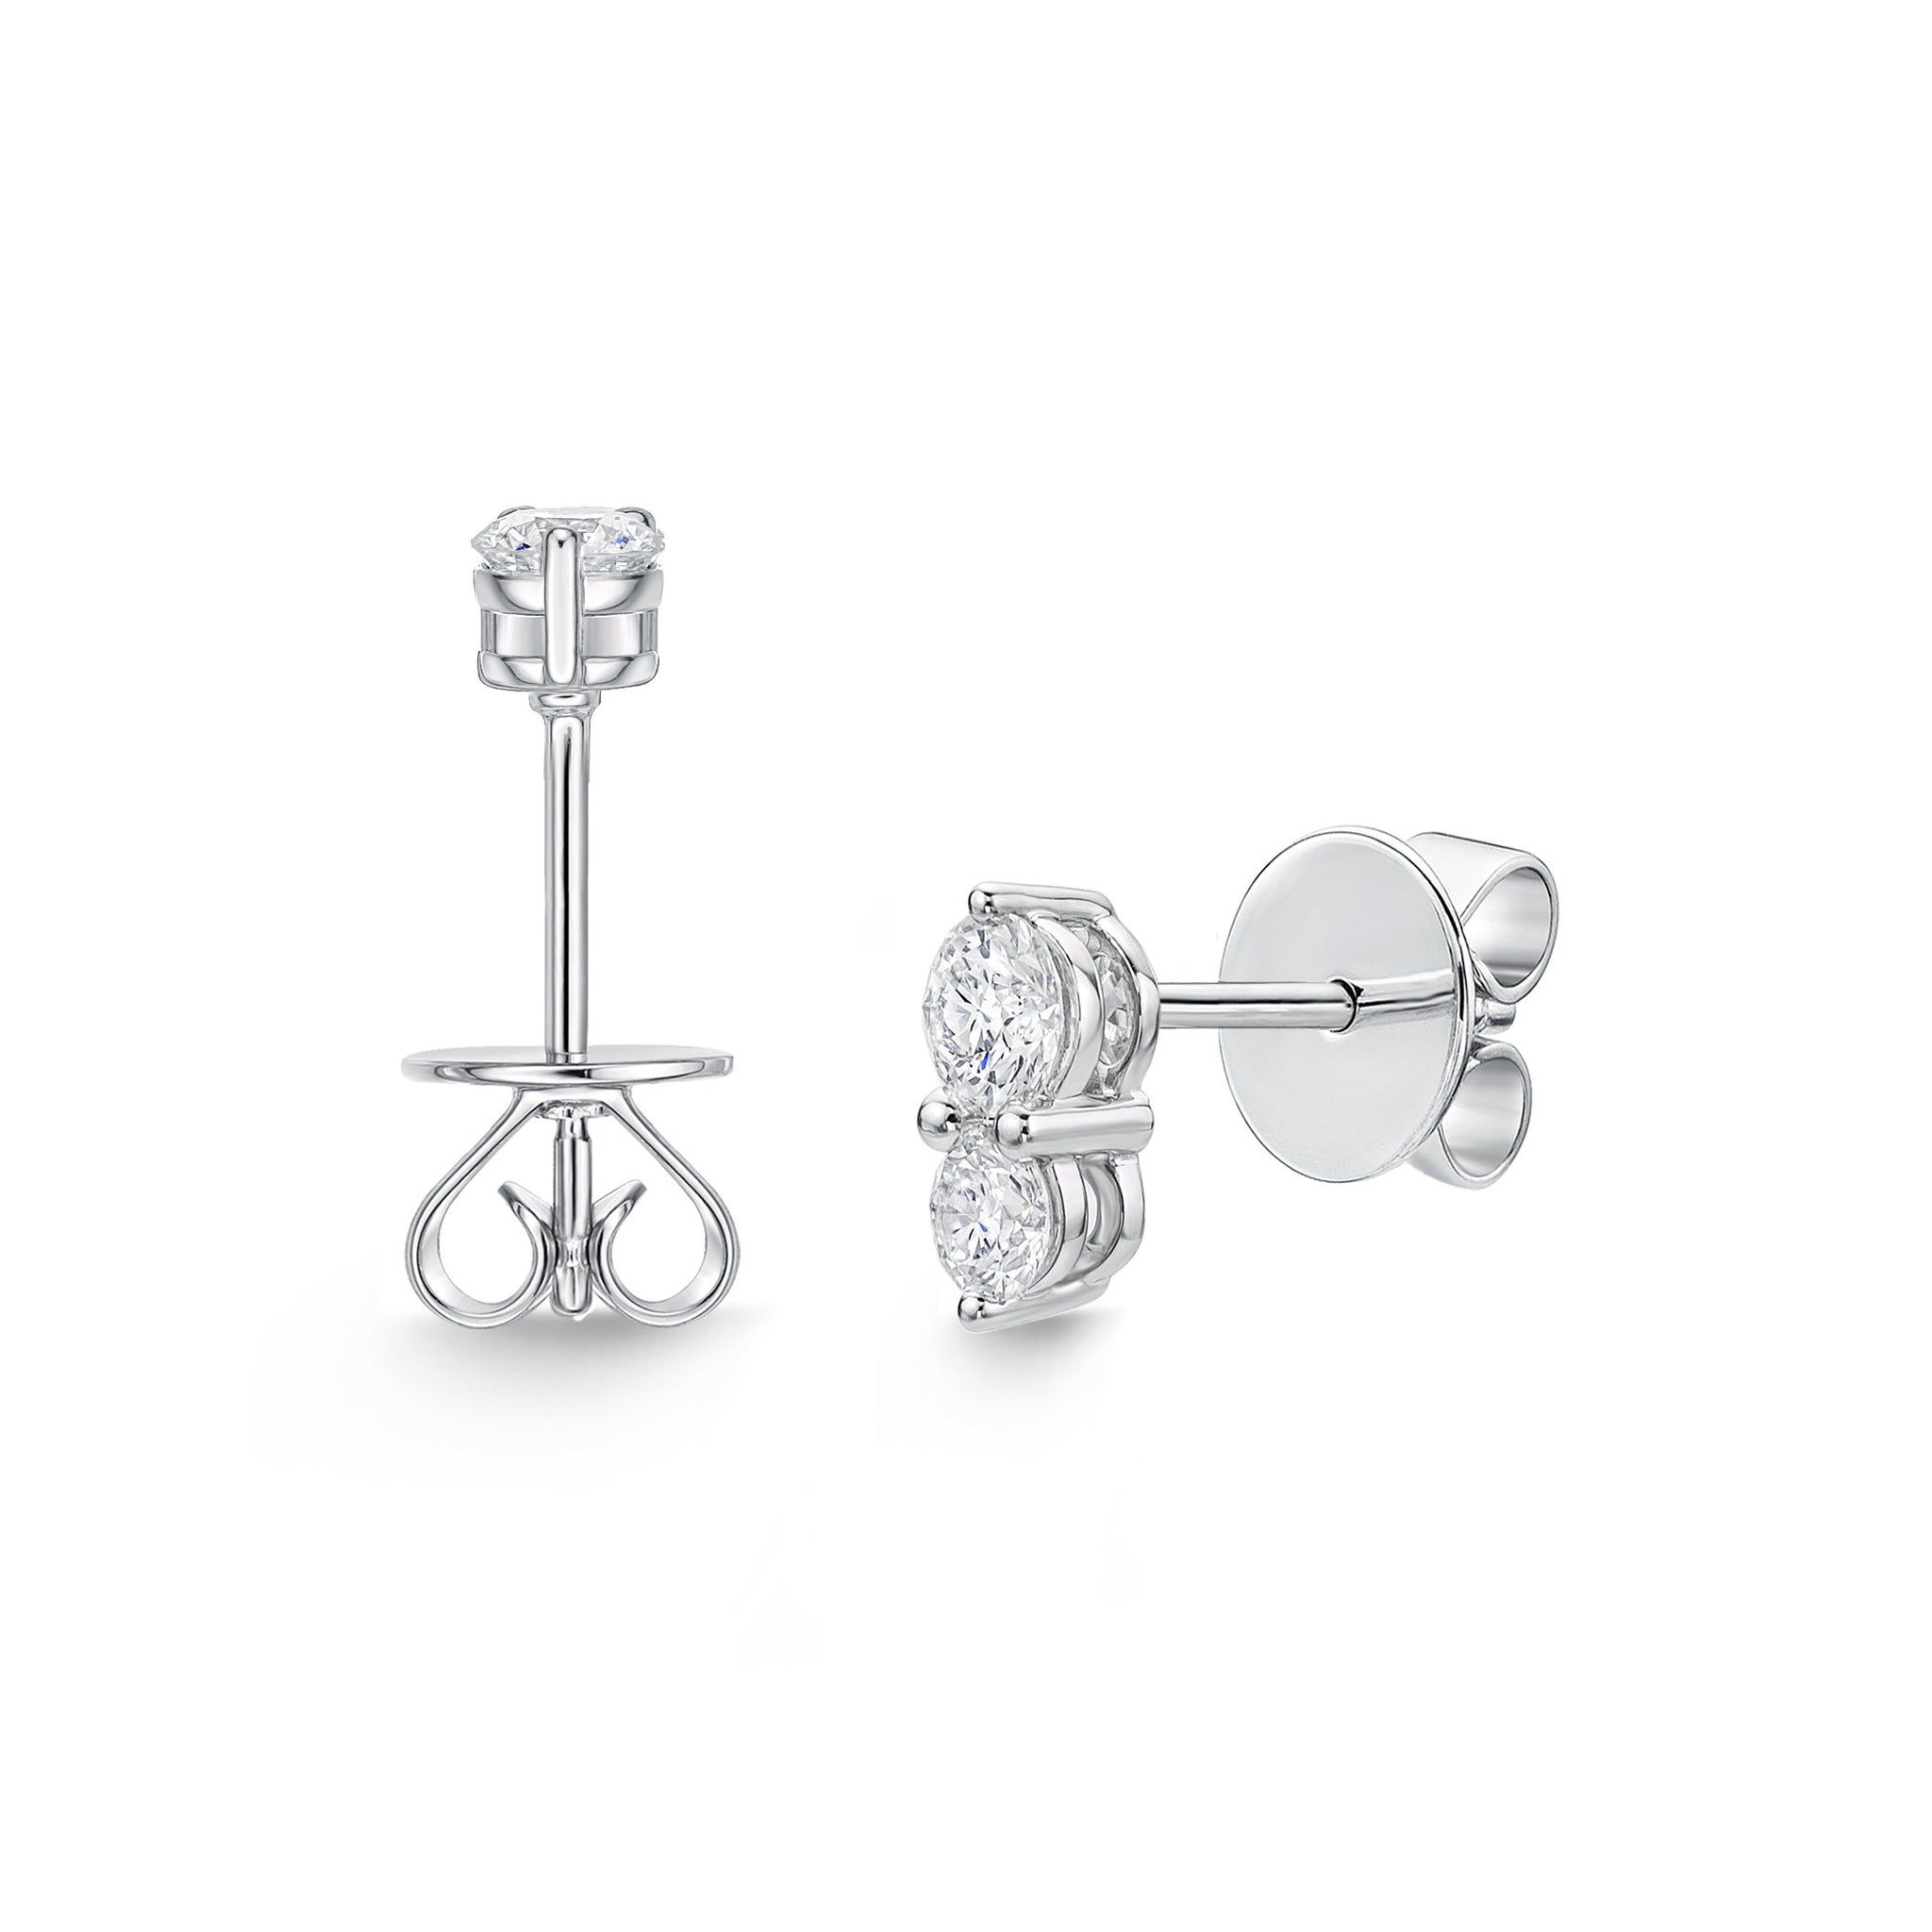 18K White Gold 2 Stone Stud Earrings